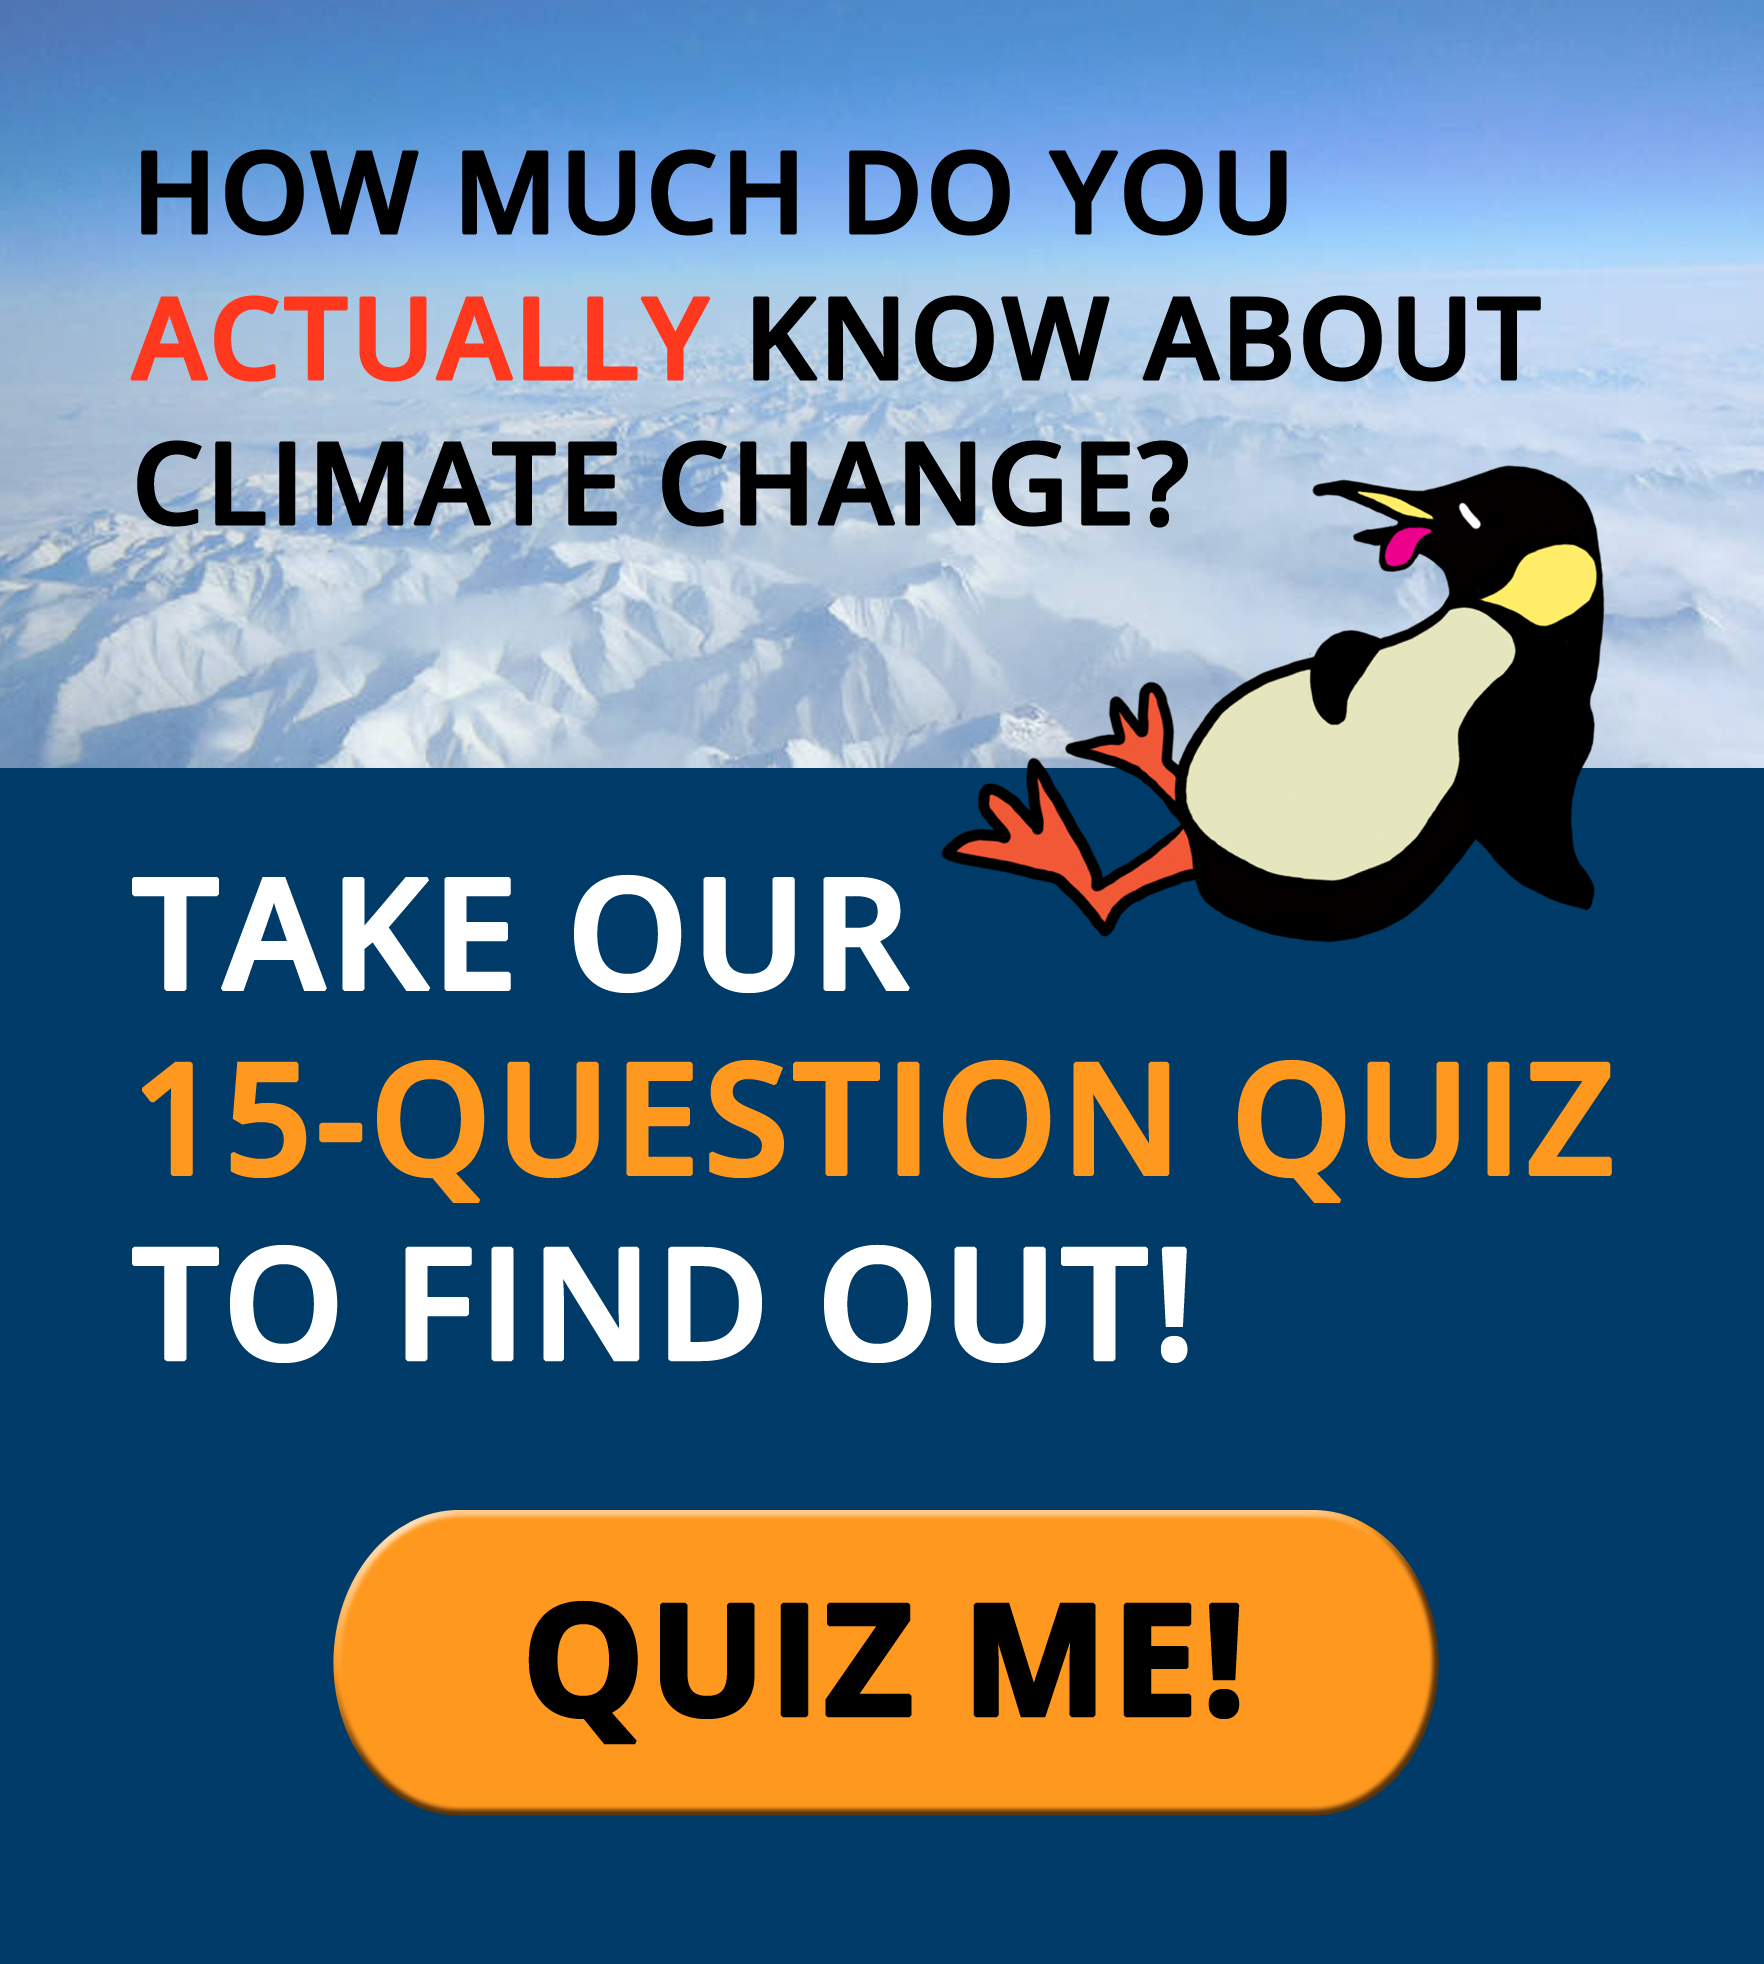 How much do you actually know about climate change? Take our 15-question quiz to find out!